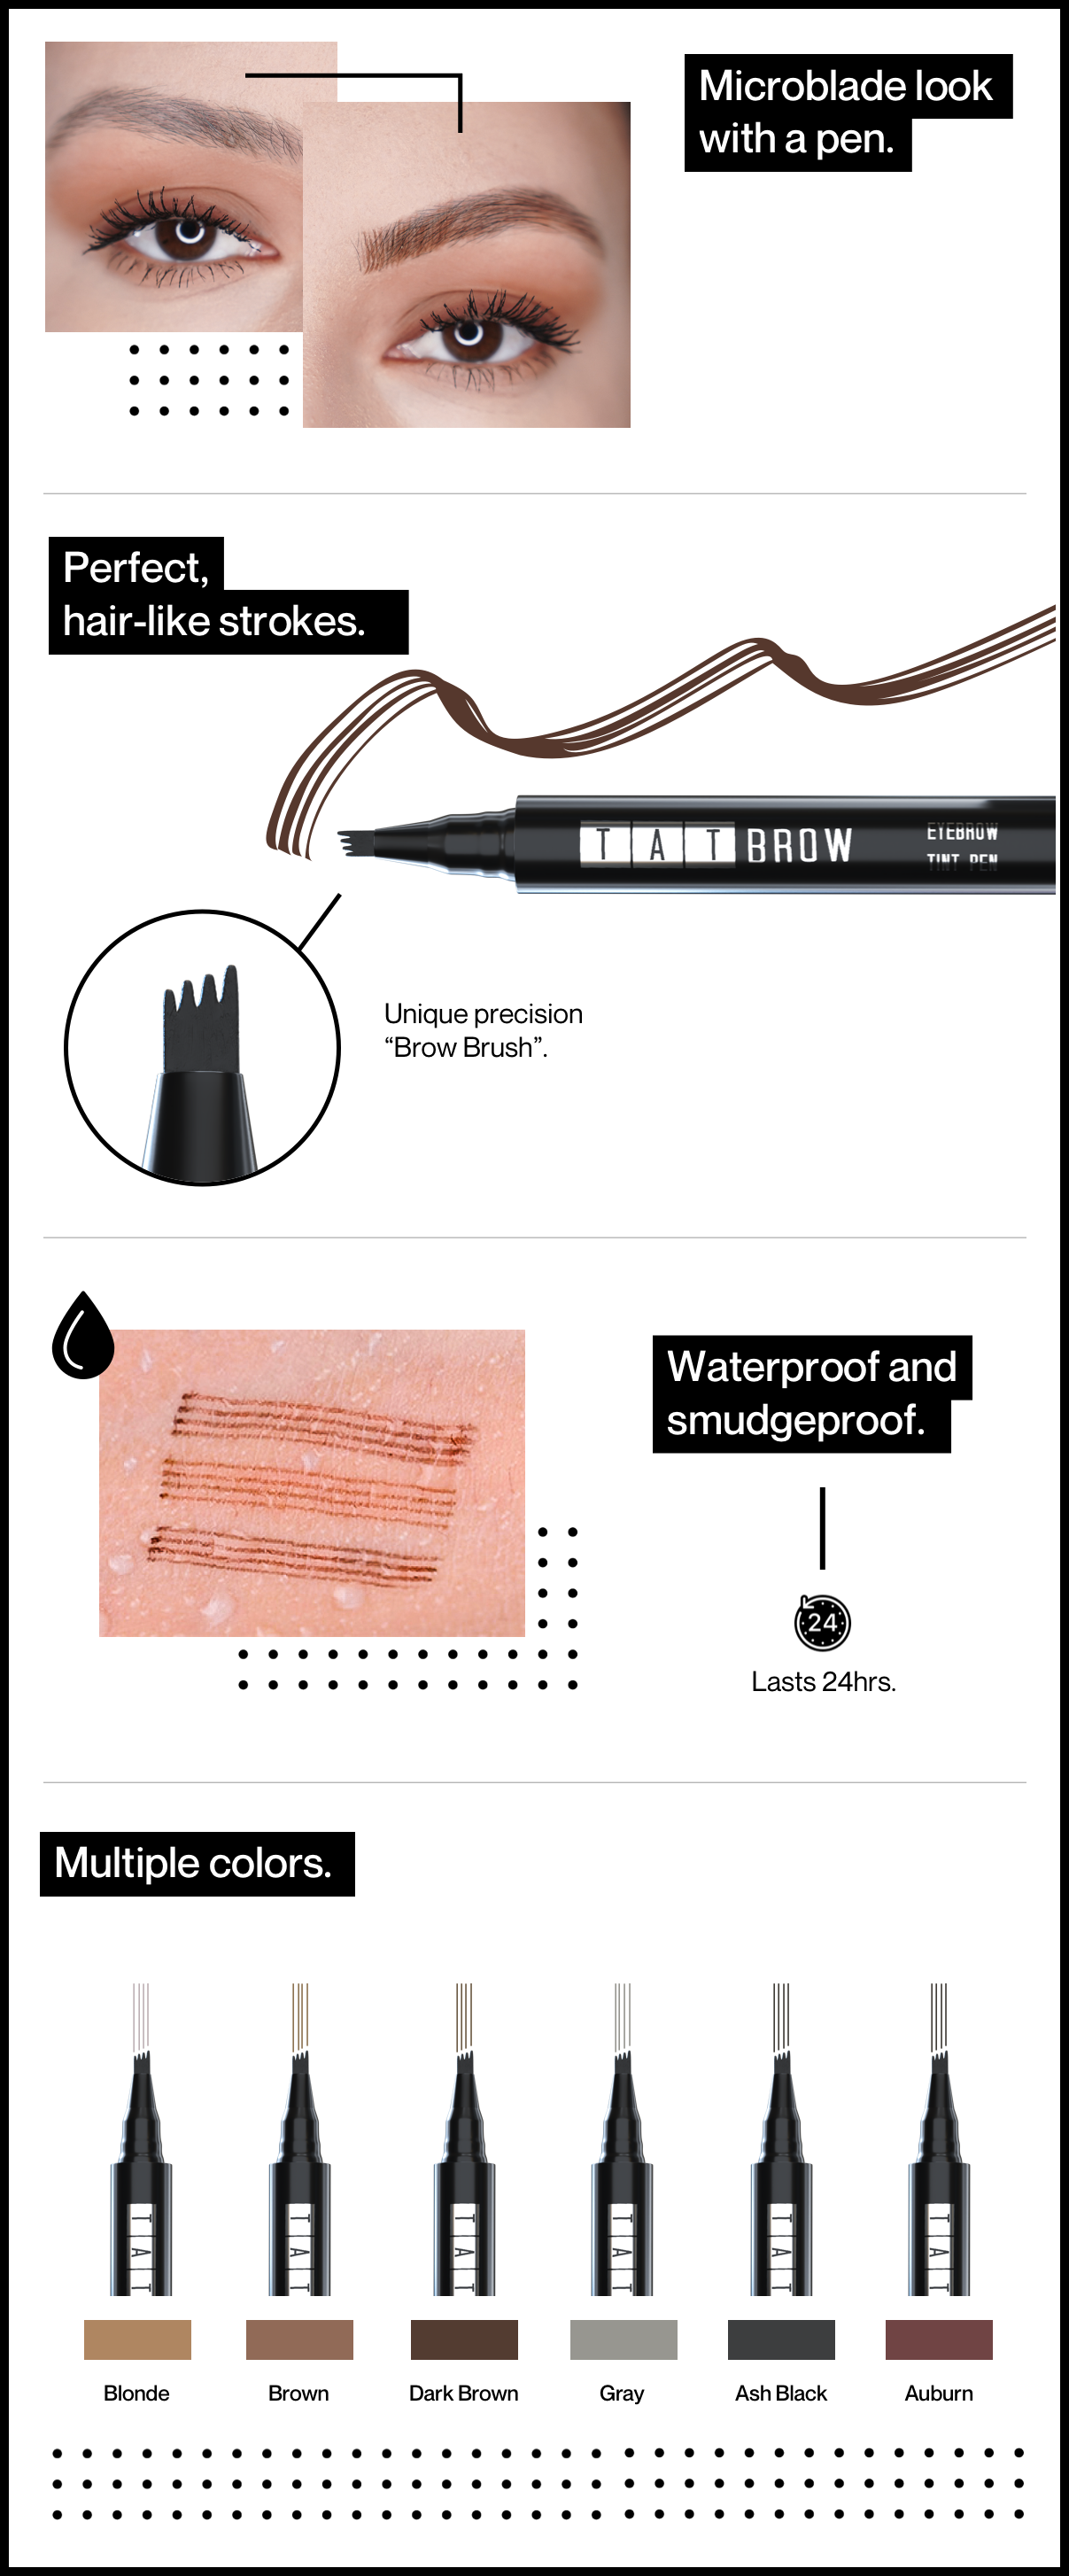 TatBrow Explainer Image